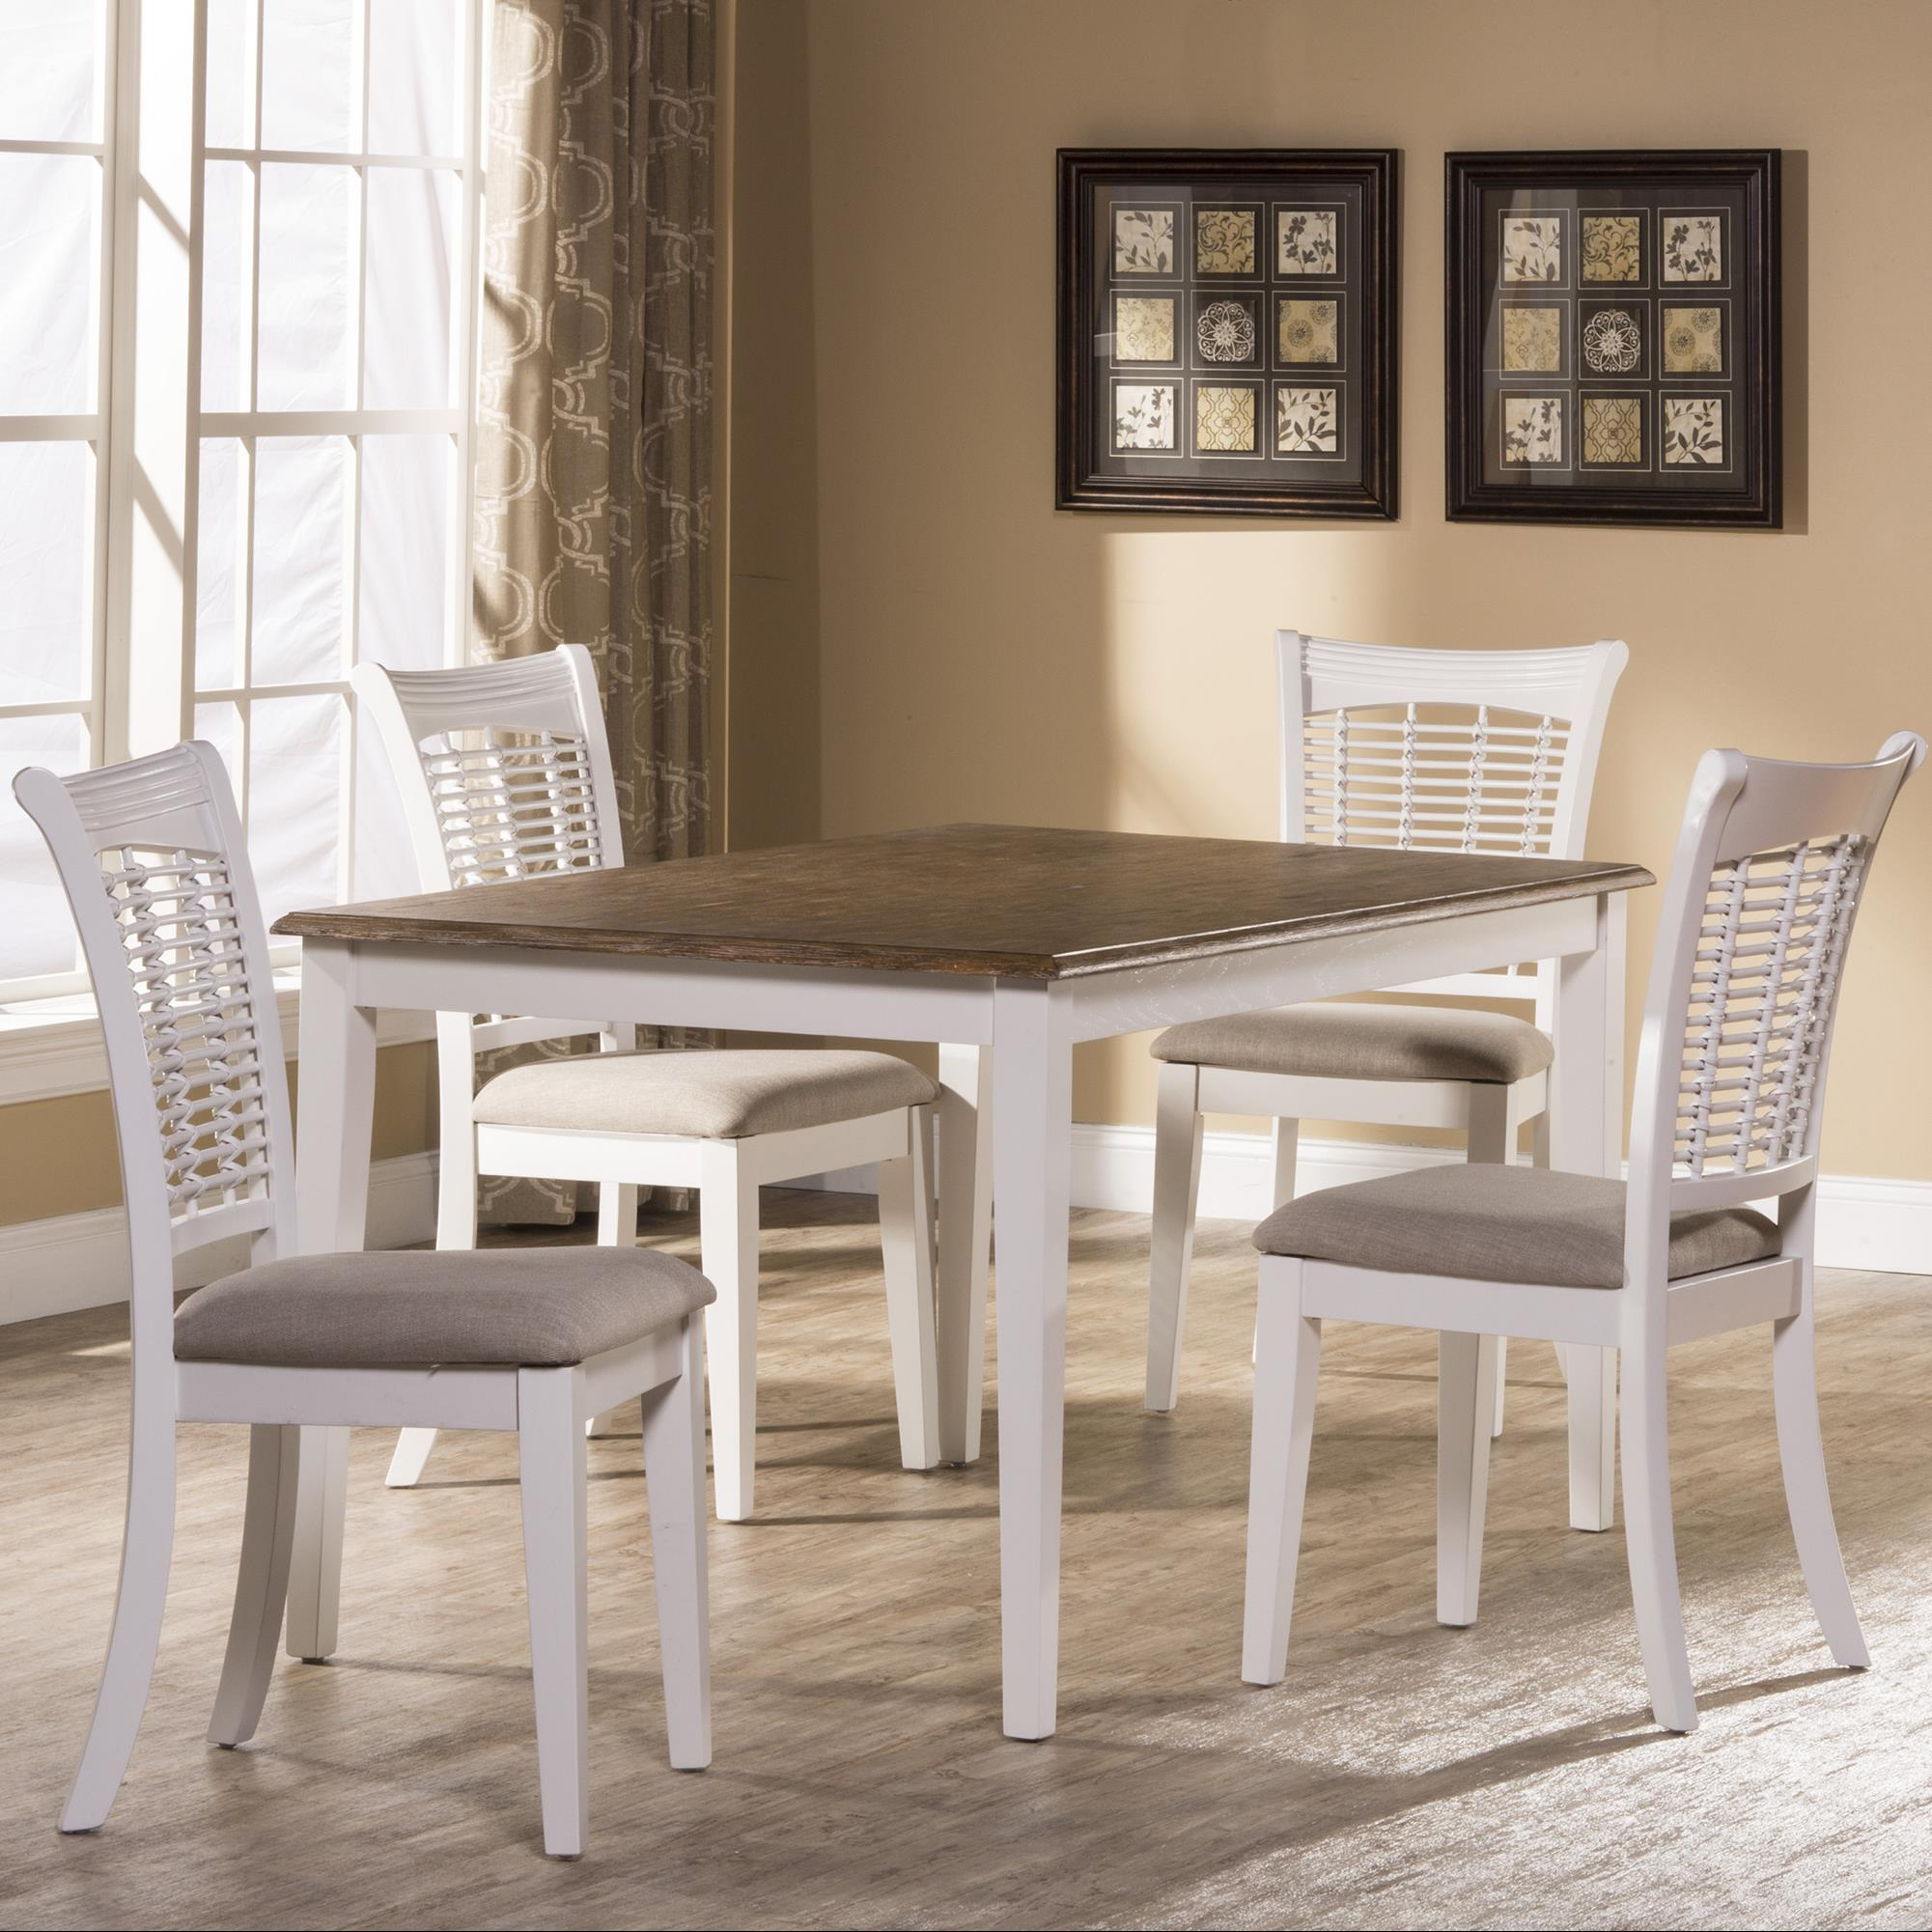 Bayberry White Five Piece Rectangle Dining Set by Hillsdale at Stoney Creek Furniture